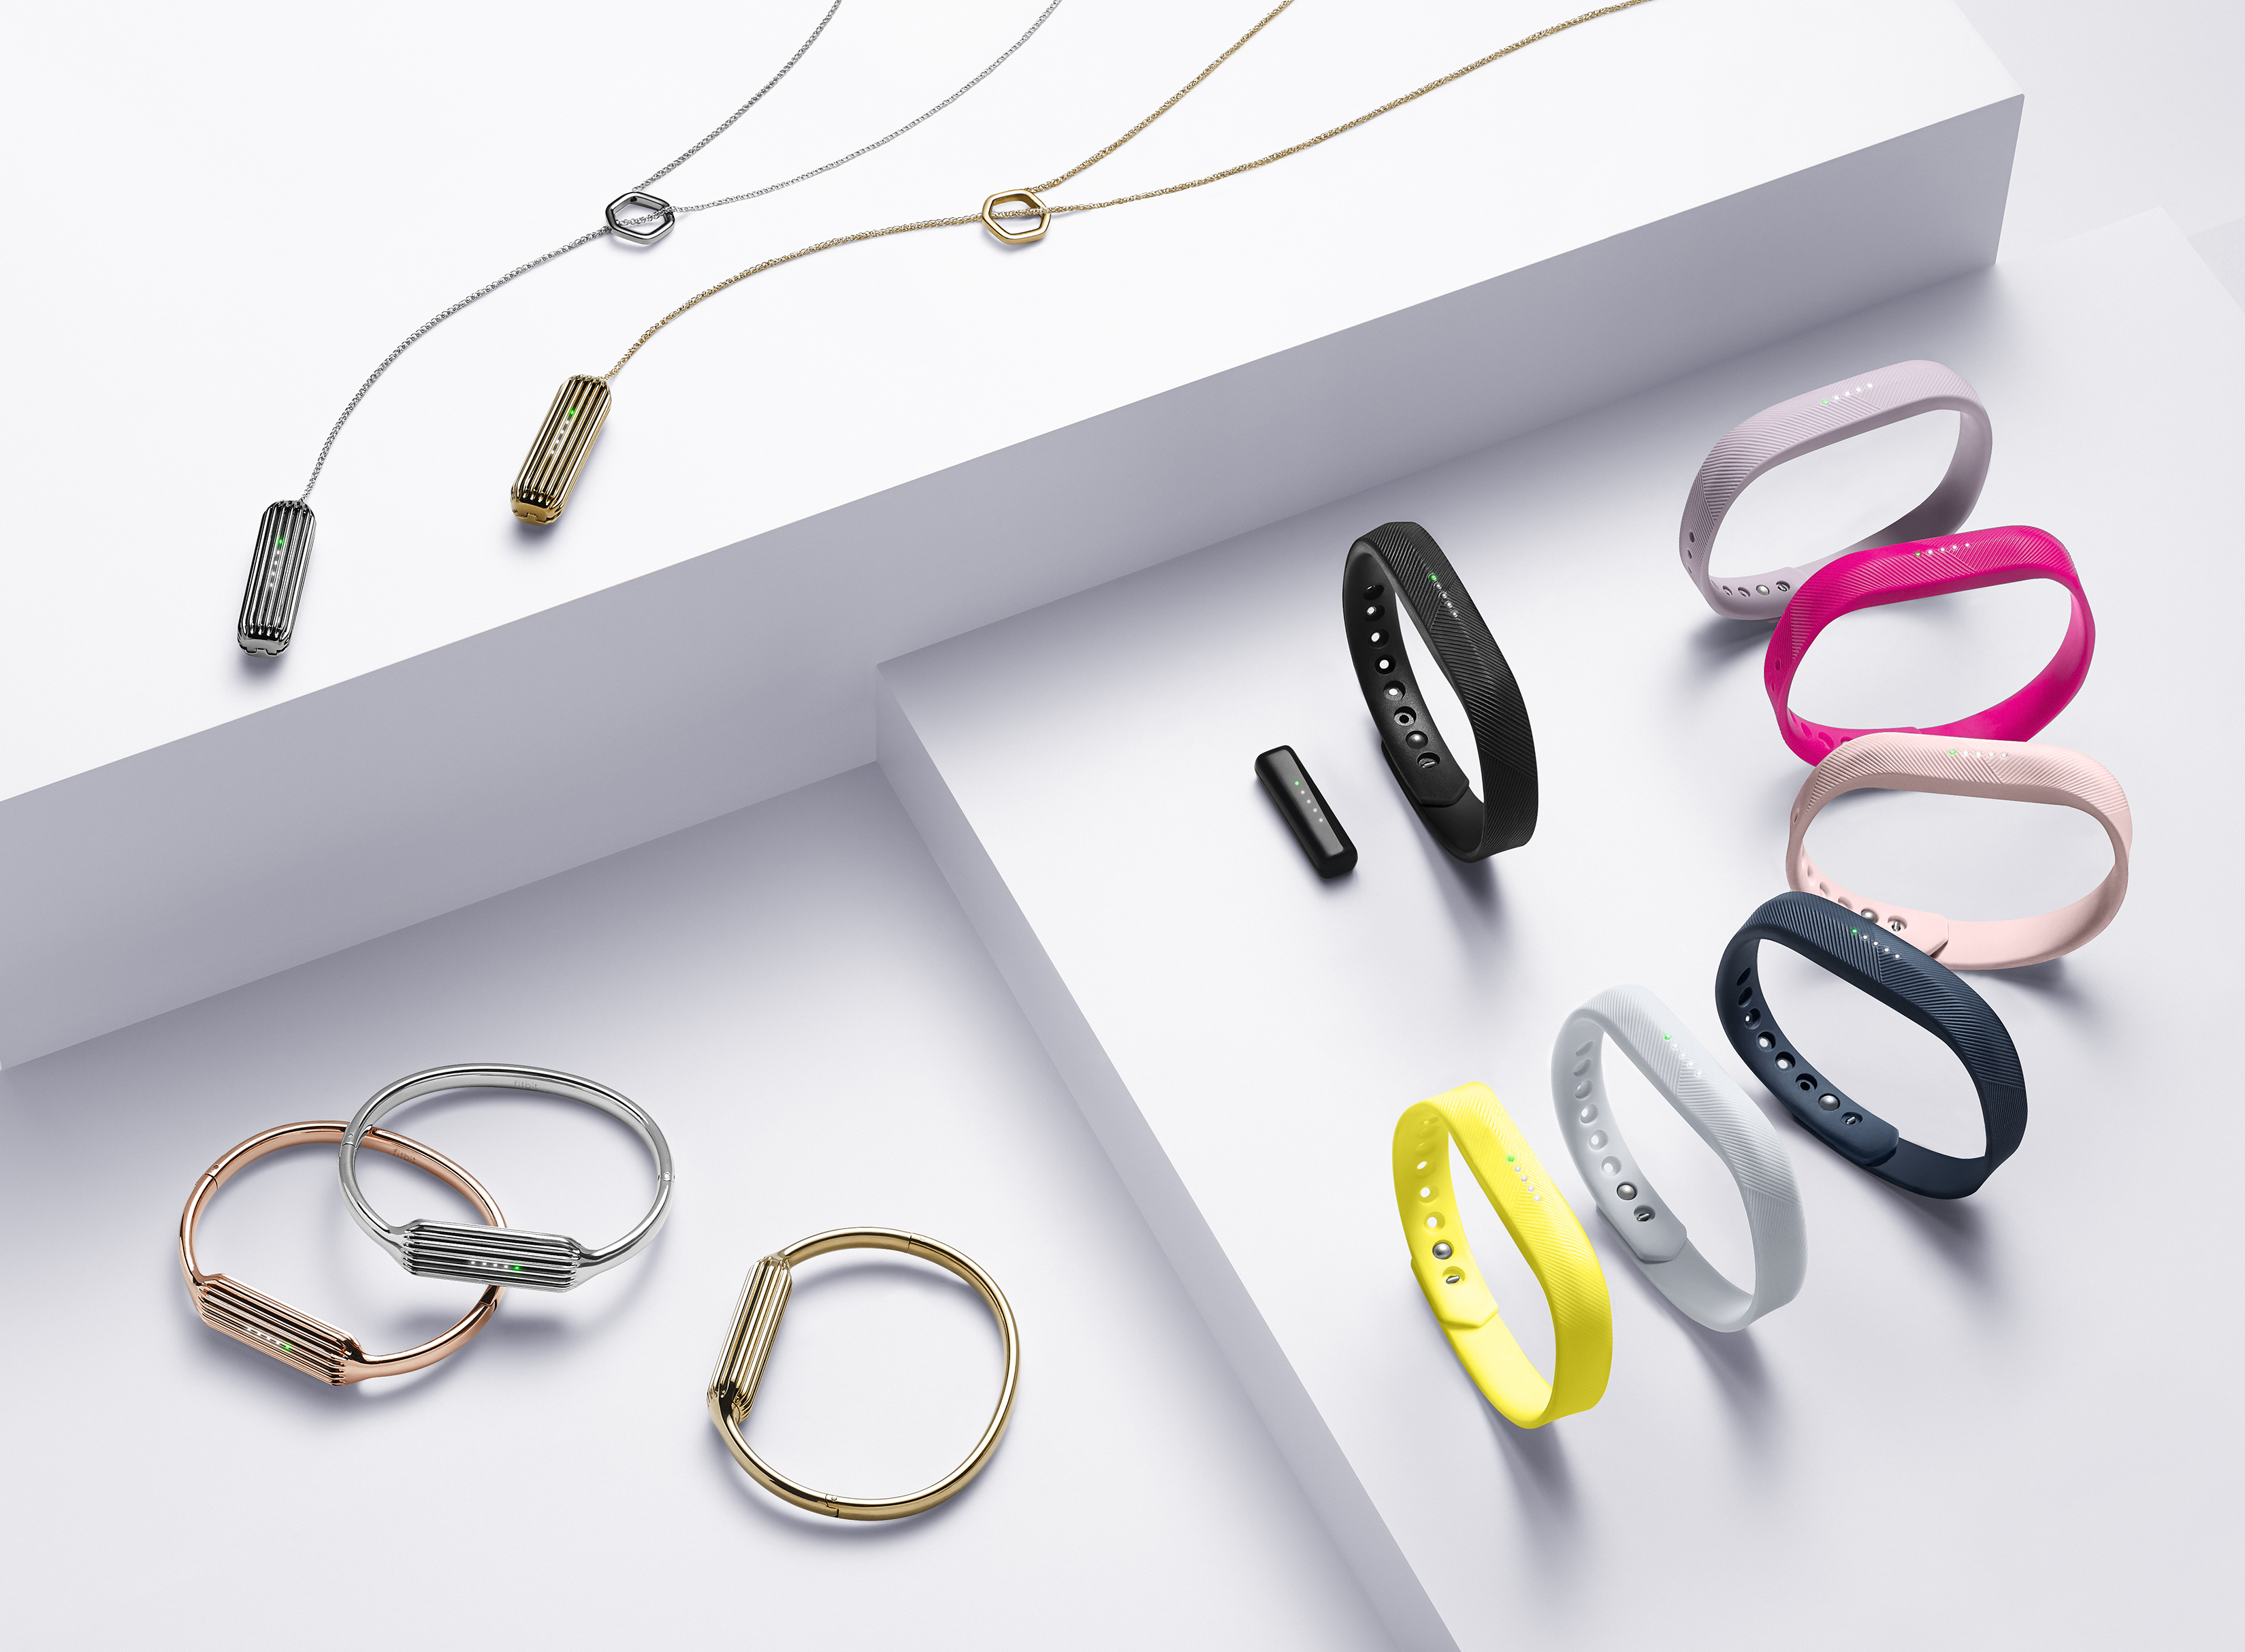 Fitbit Flex 2 offerings.